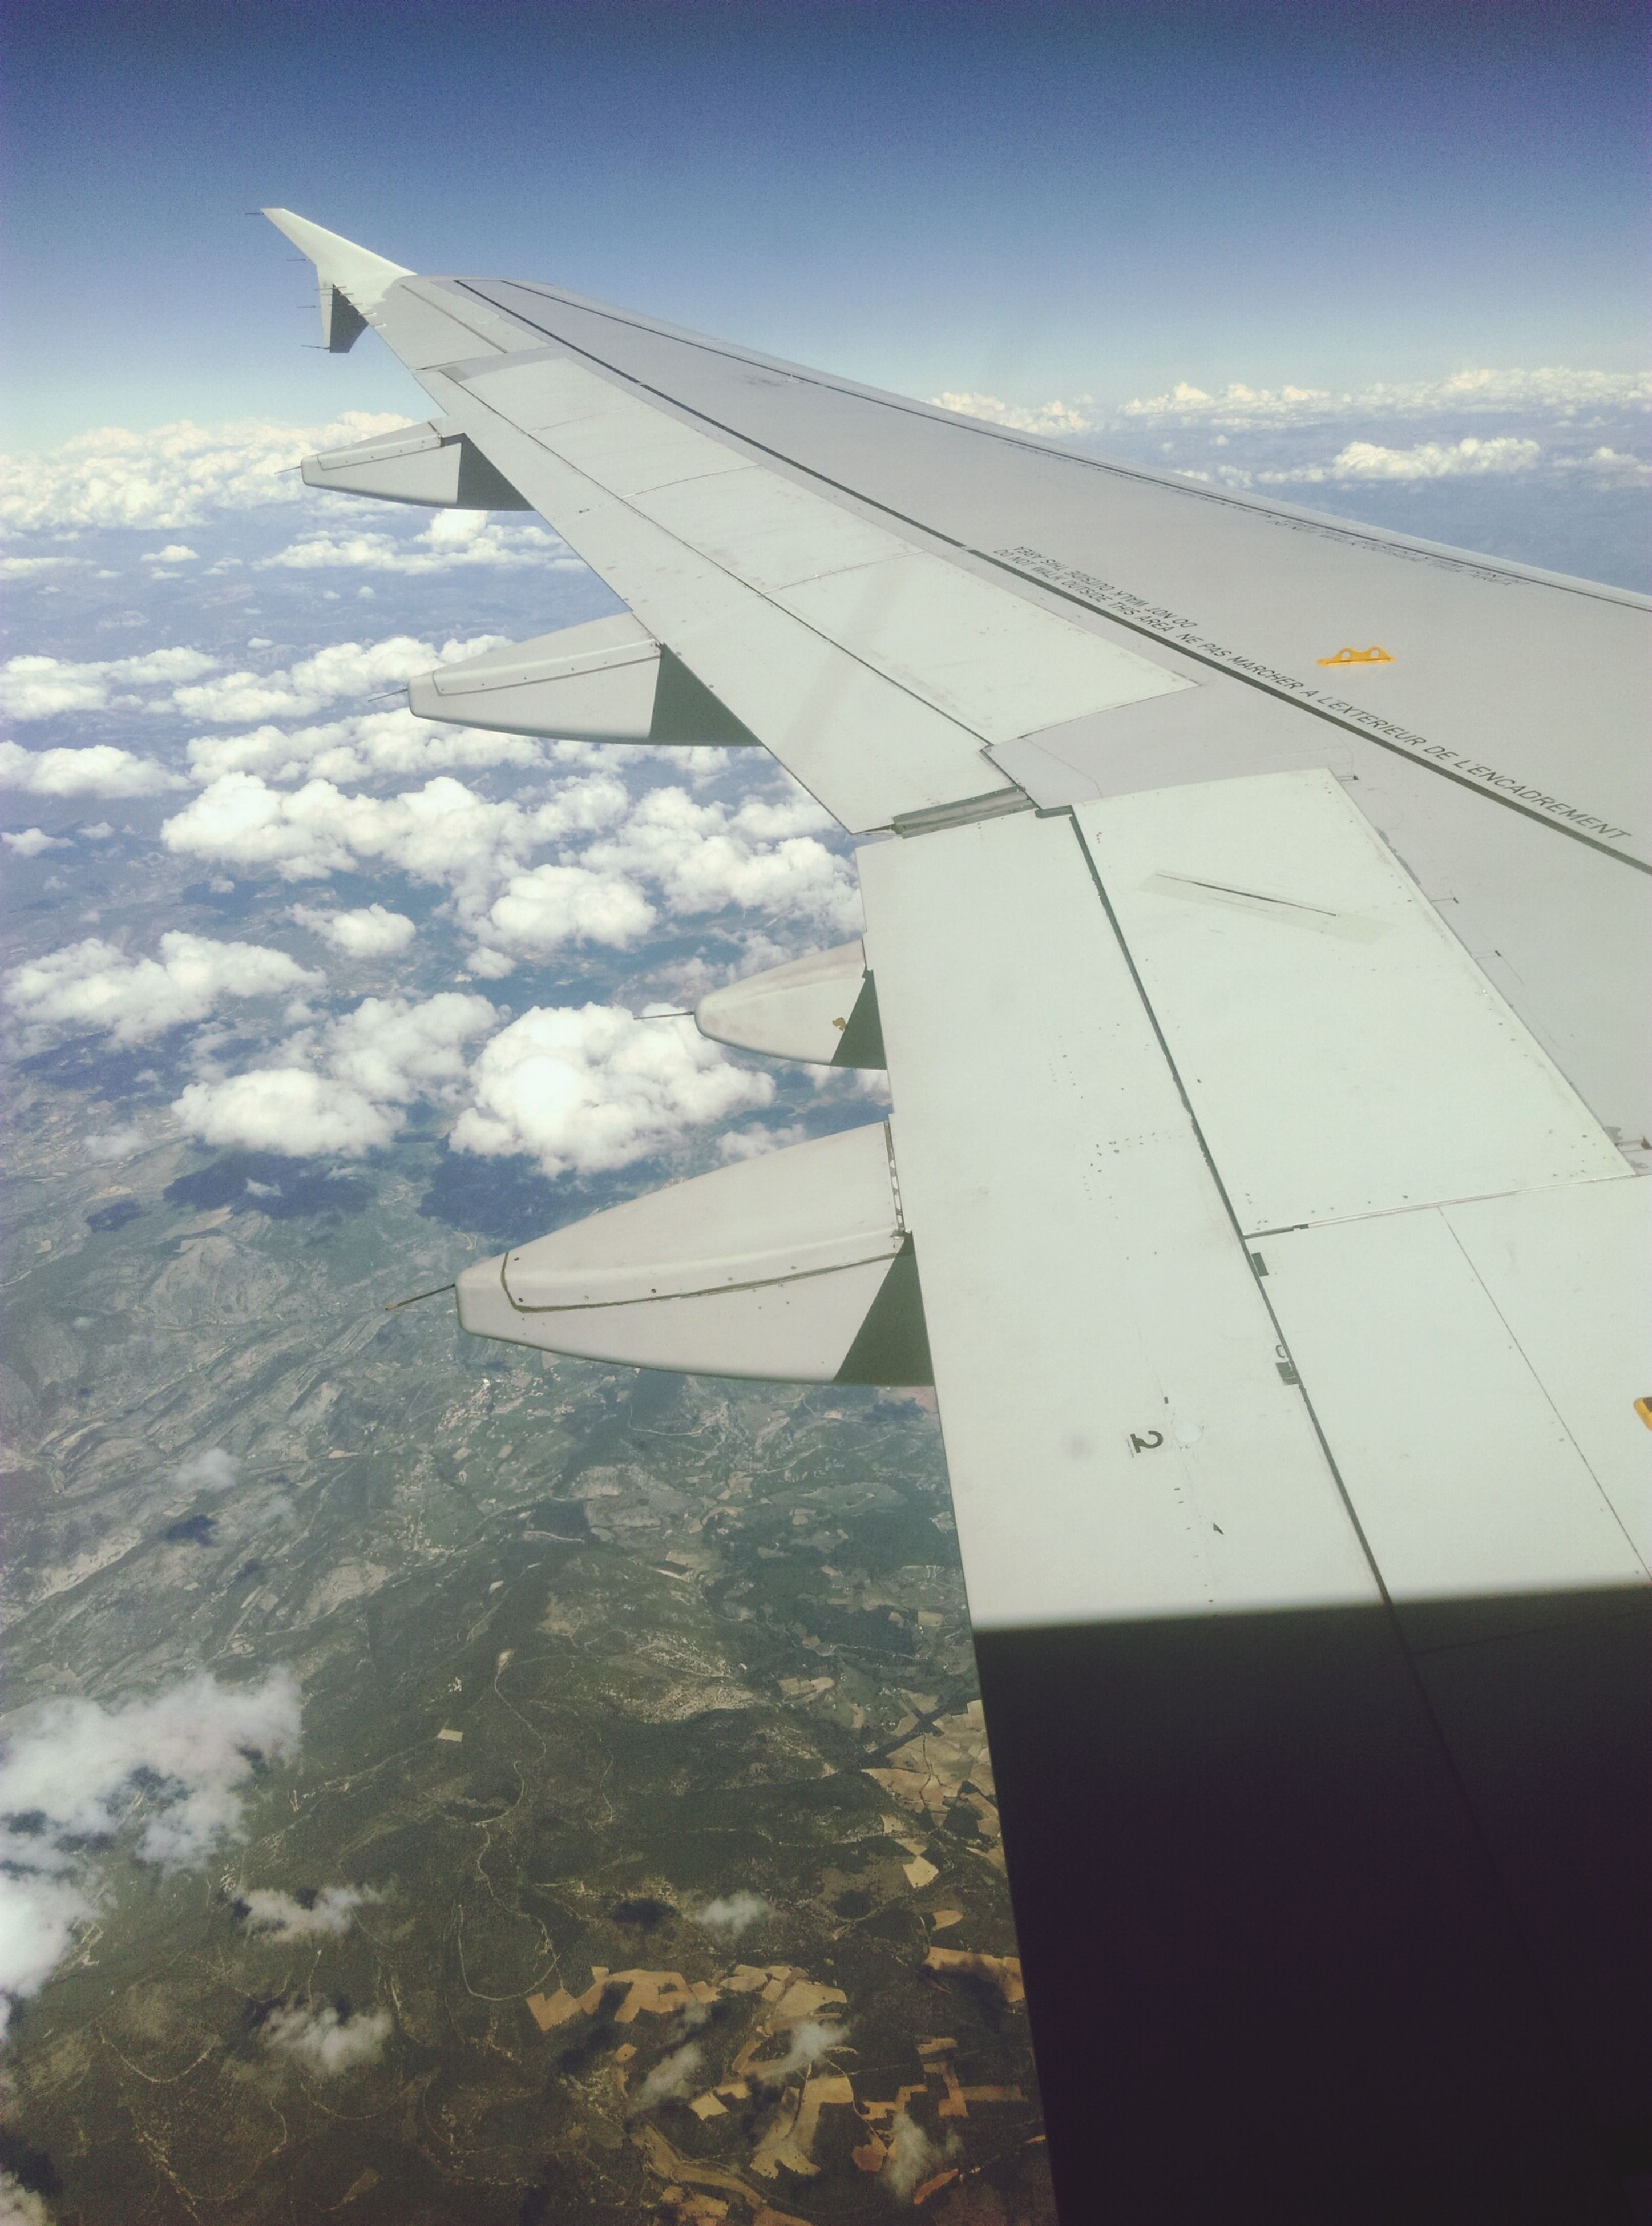 aircraft wing, airplane, flying, air vehicle, transportation, mode of transport, cropped, part of, sky, mid-air, aerial view, travel, landscape, journey, cloud - sky, airplane wing, public transportation, scenics, nature, beauty in nature